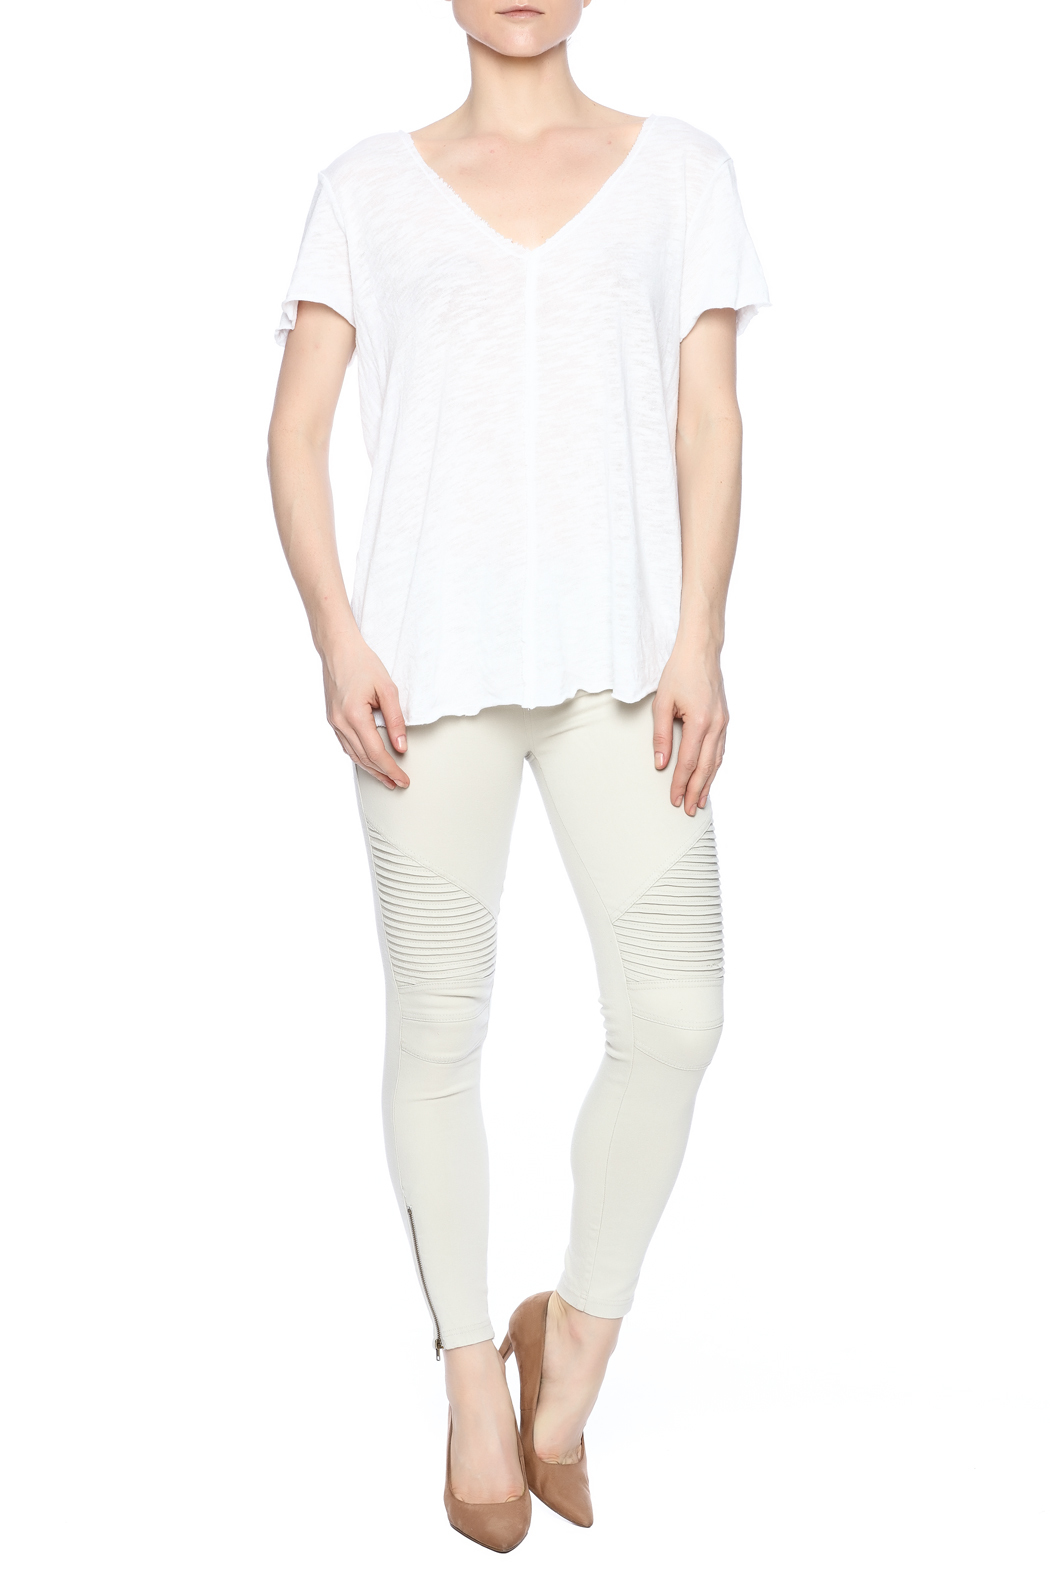 Project Social T Raw Edge V-Neck - Front Full Image